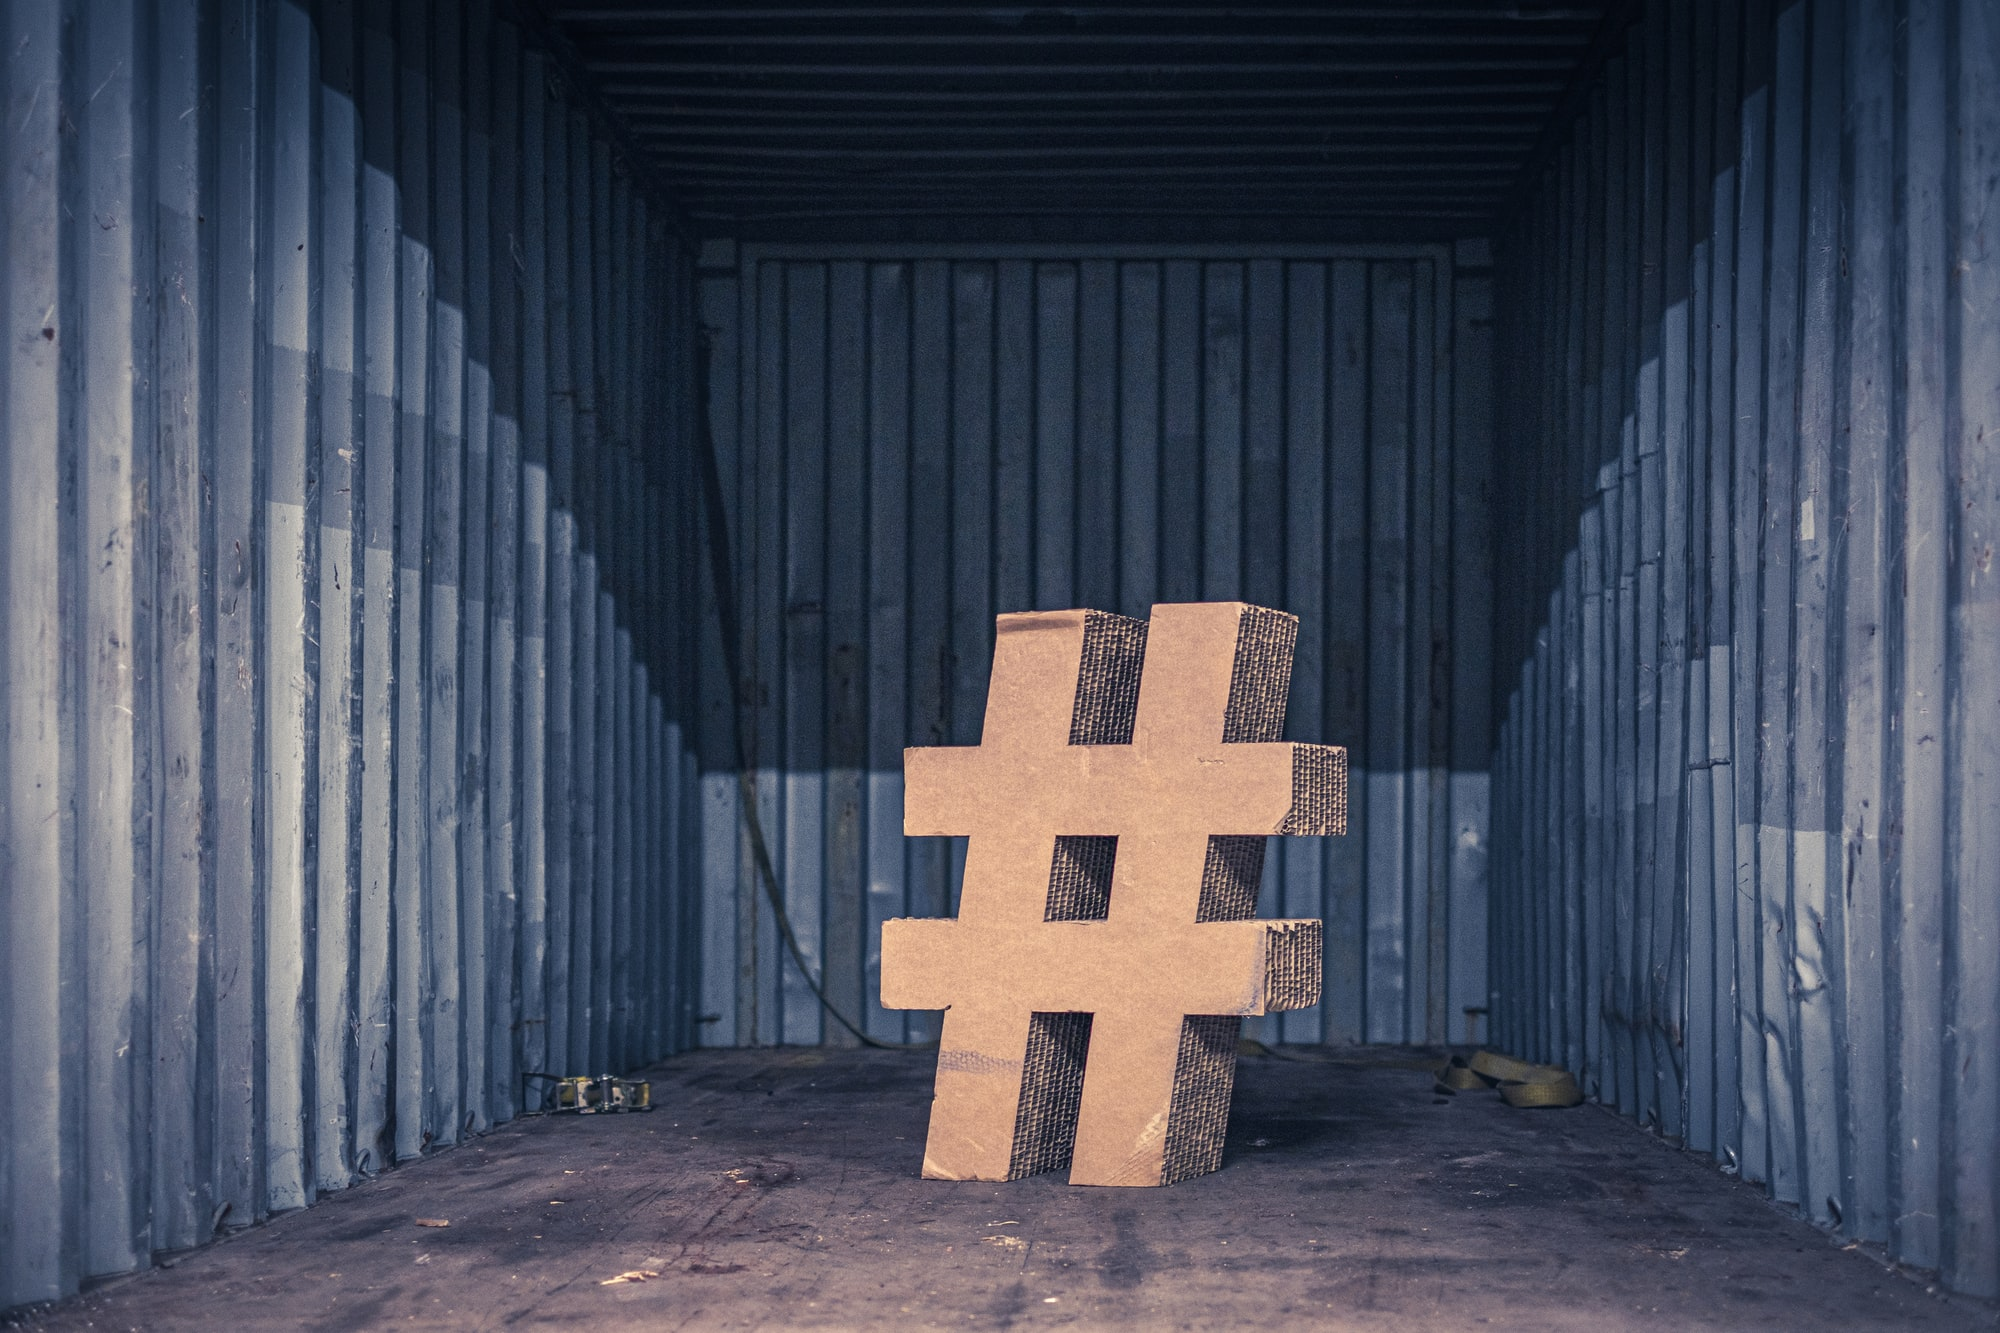 Cardboard #, hashtag in the shipping container